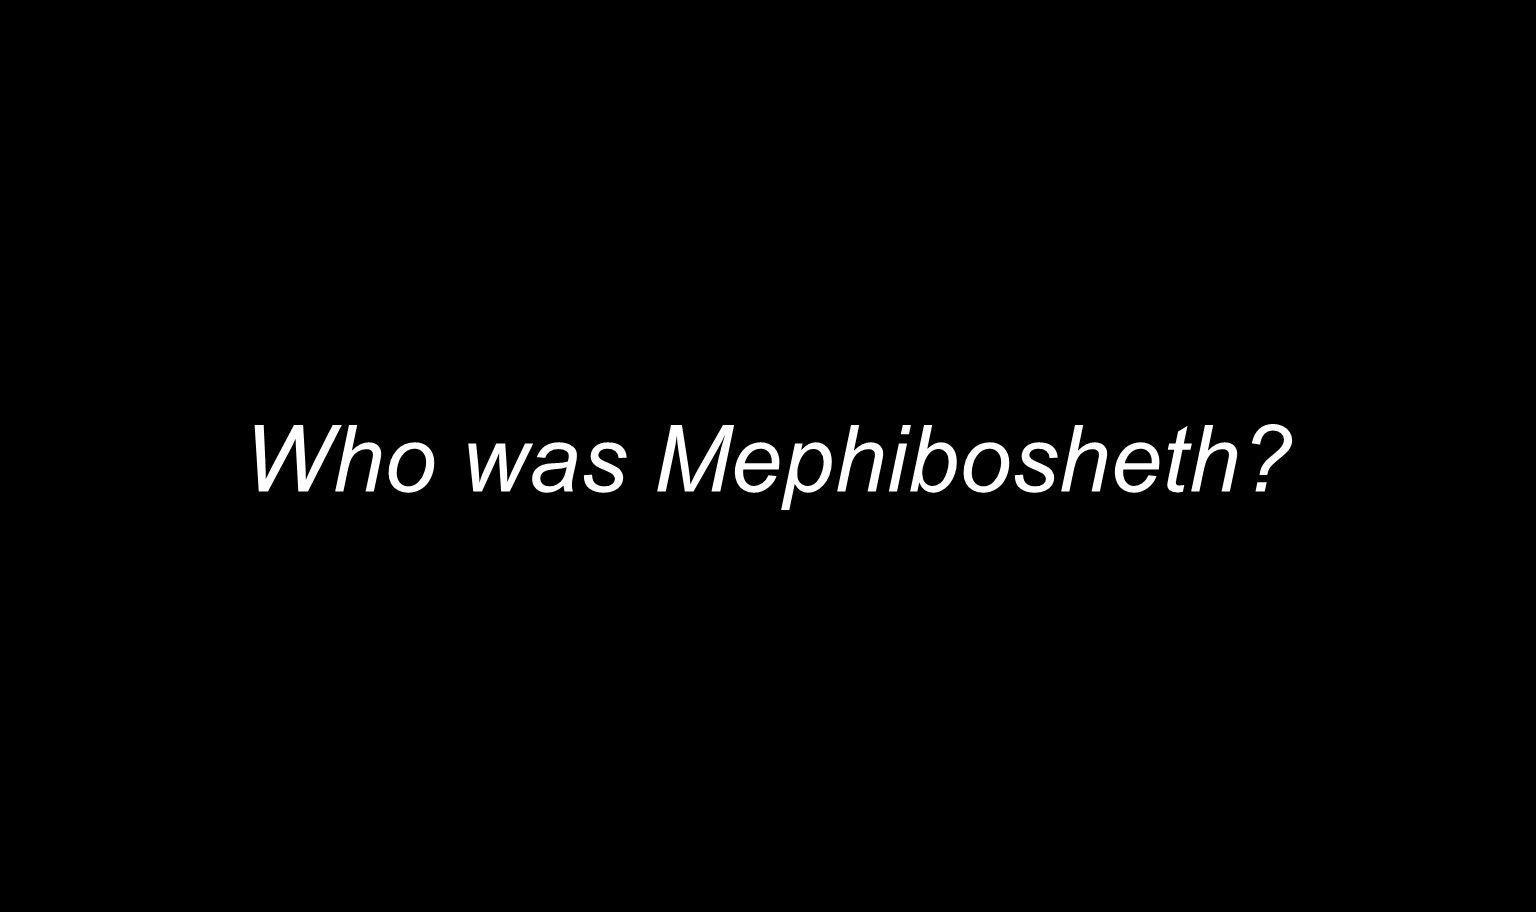 Who was Mephibosheth?